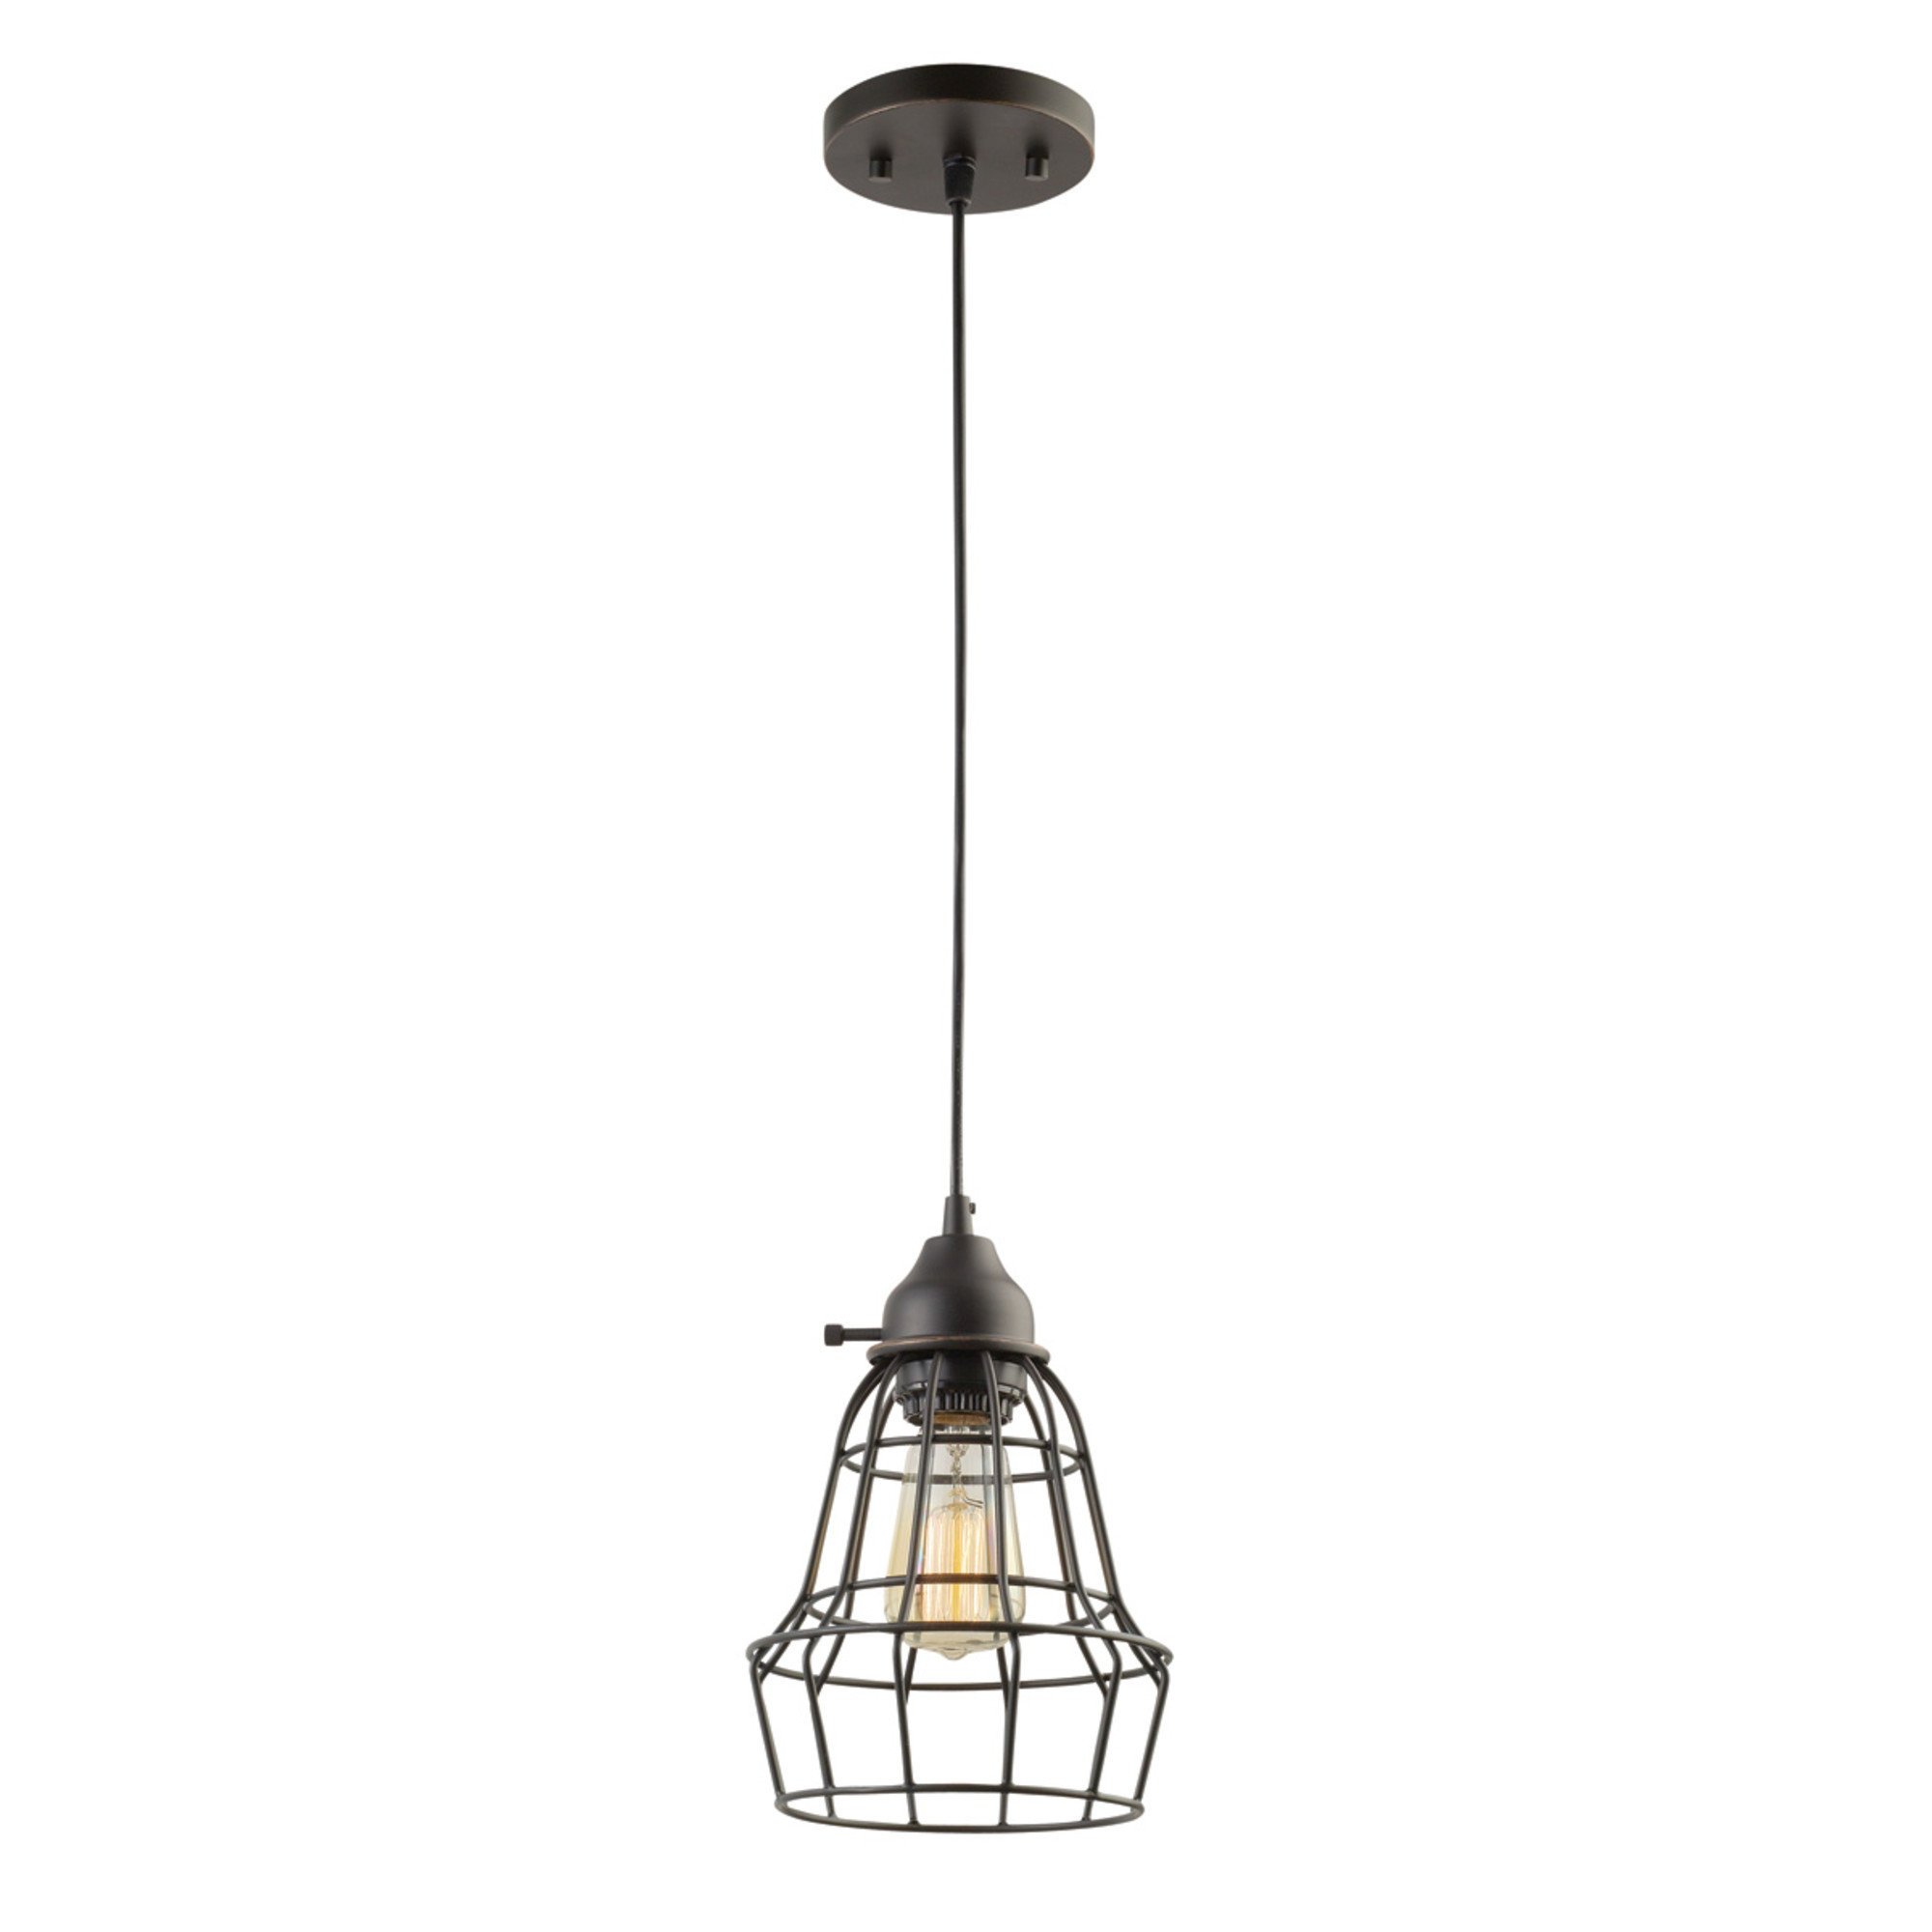 Kathi 1-Light Lantern Pendant with regard to Well known Vintage Edison 1-Light Bowl Pendants